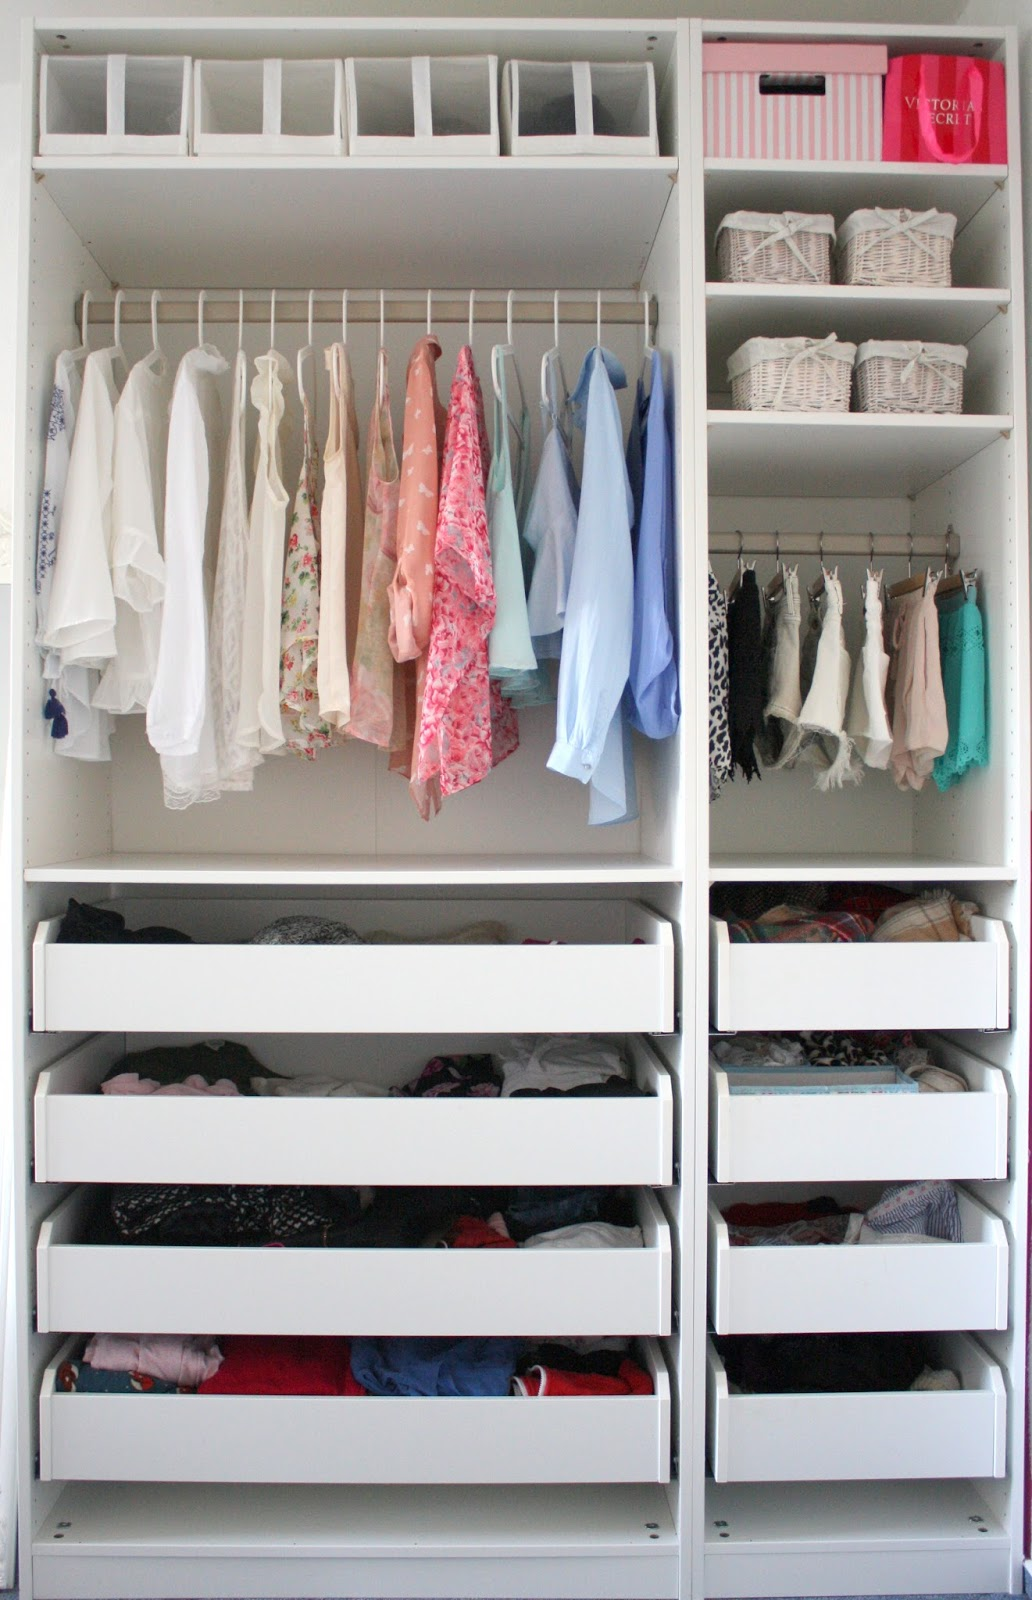 Glas Vitrine In Ikea Katalog ~ Featherwings My closet  Impressions, organisation & favourites